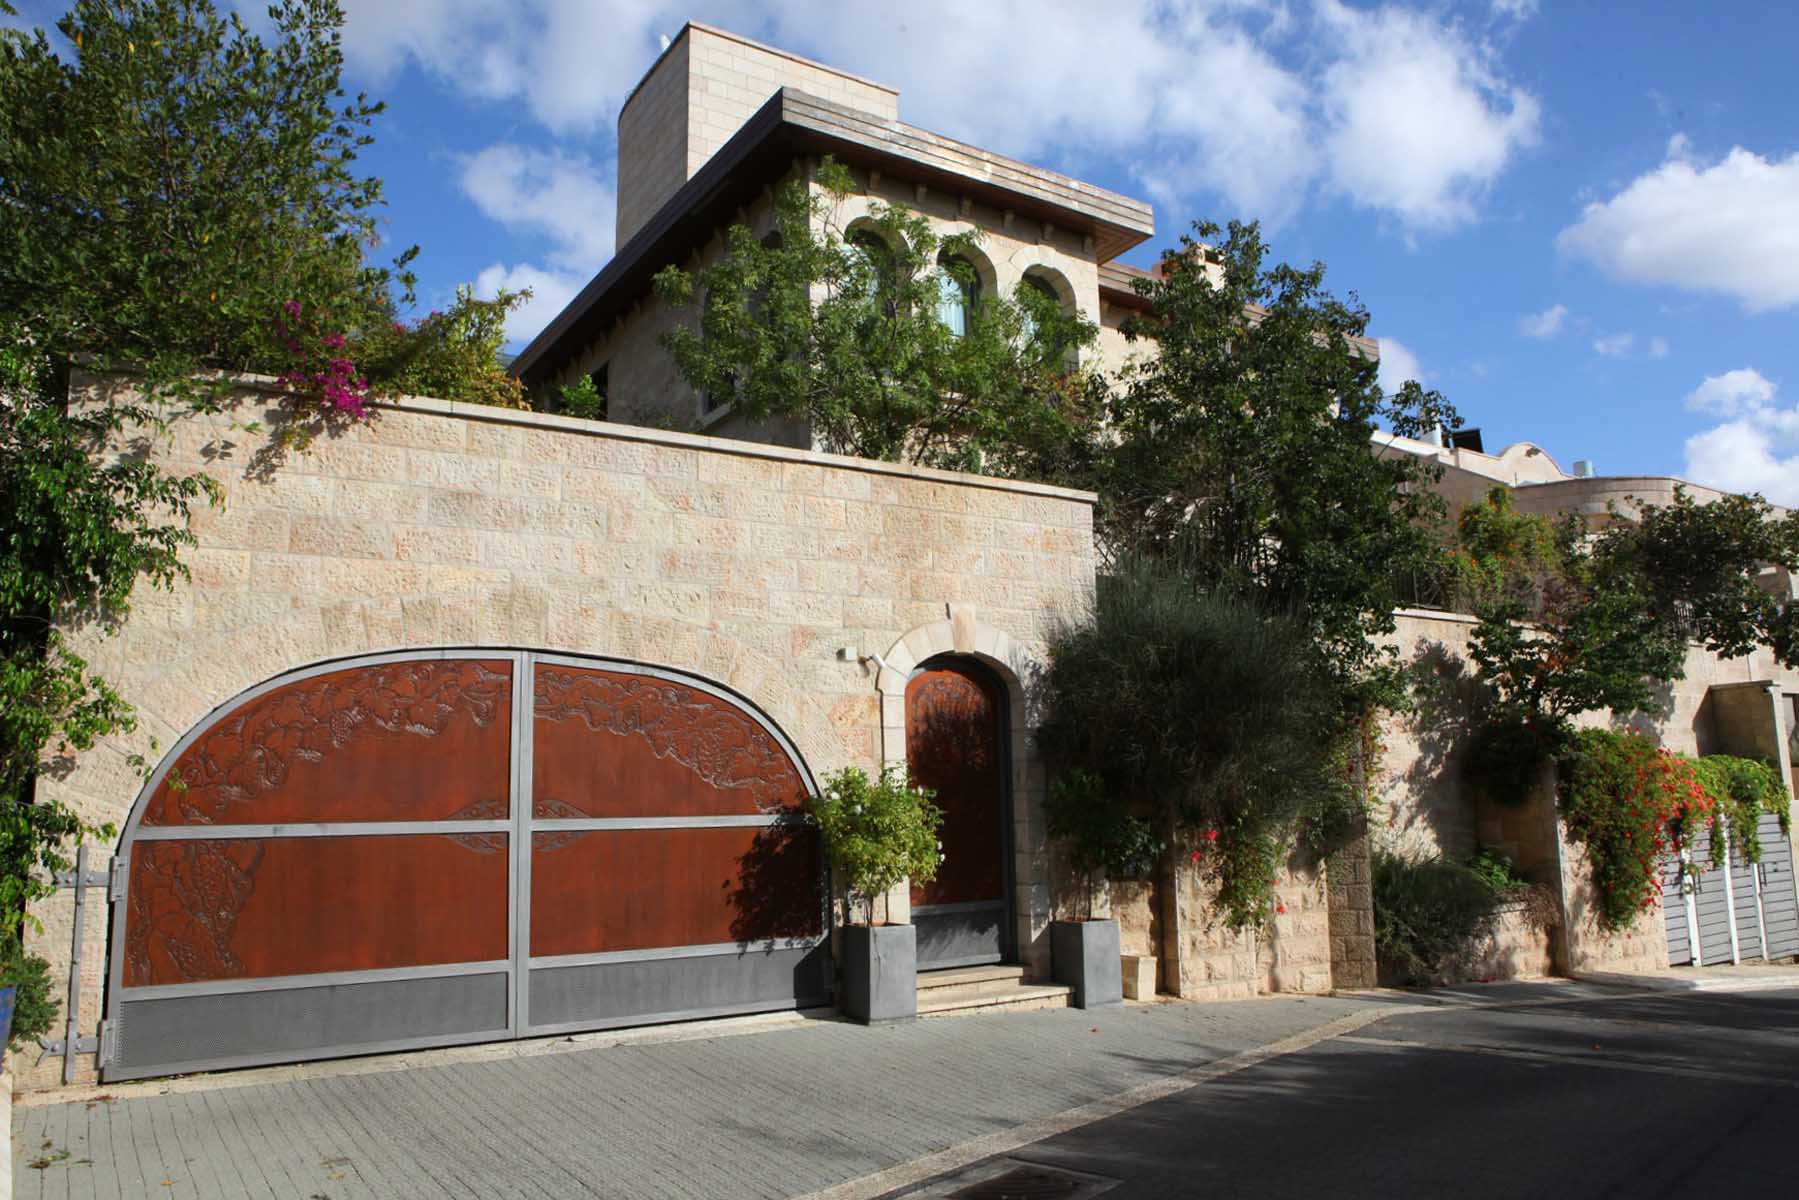 Additional photo for property listing at Incomparable luxury villa in Historic 'Ramat Denya' Neighborhood Jerusalem, Israel Israël